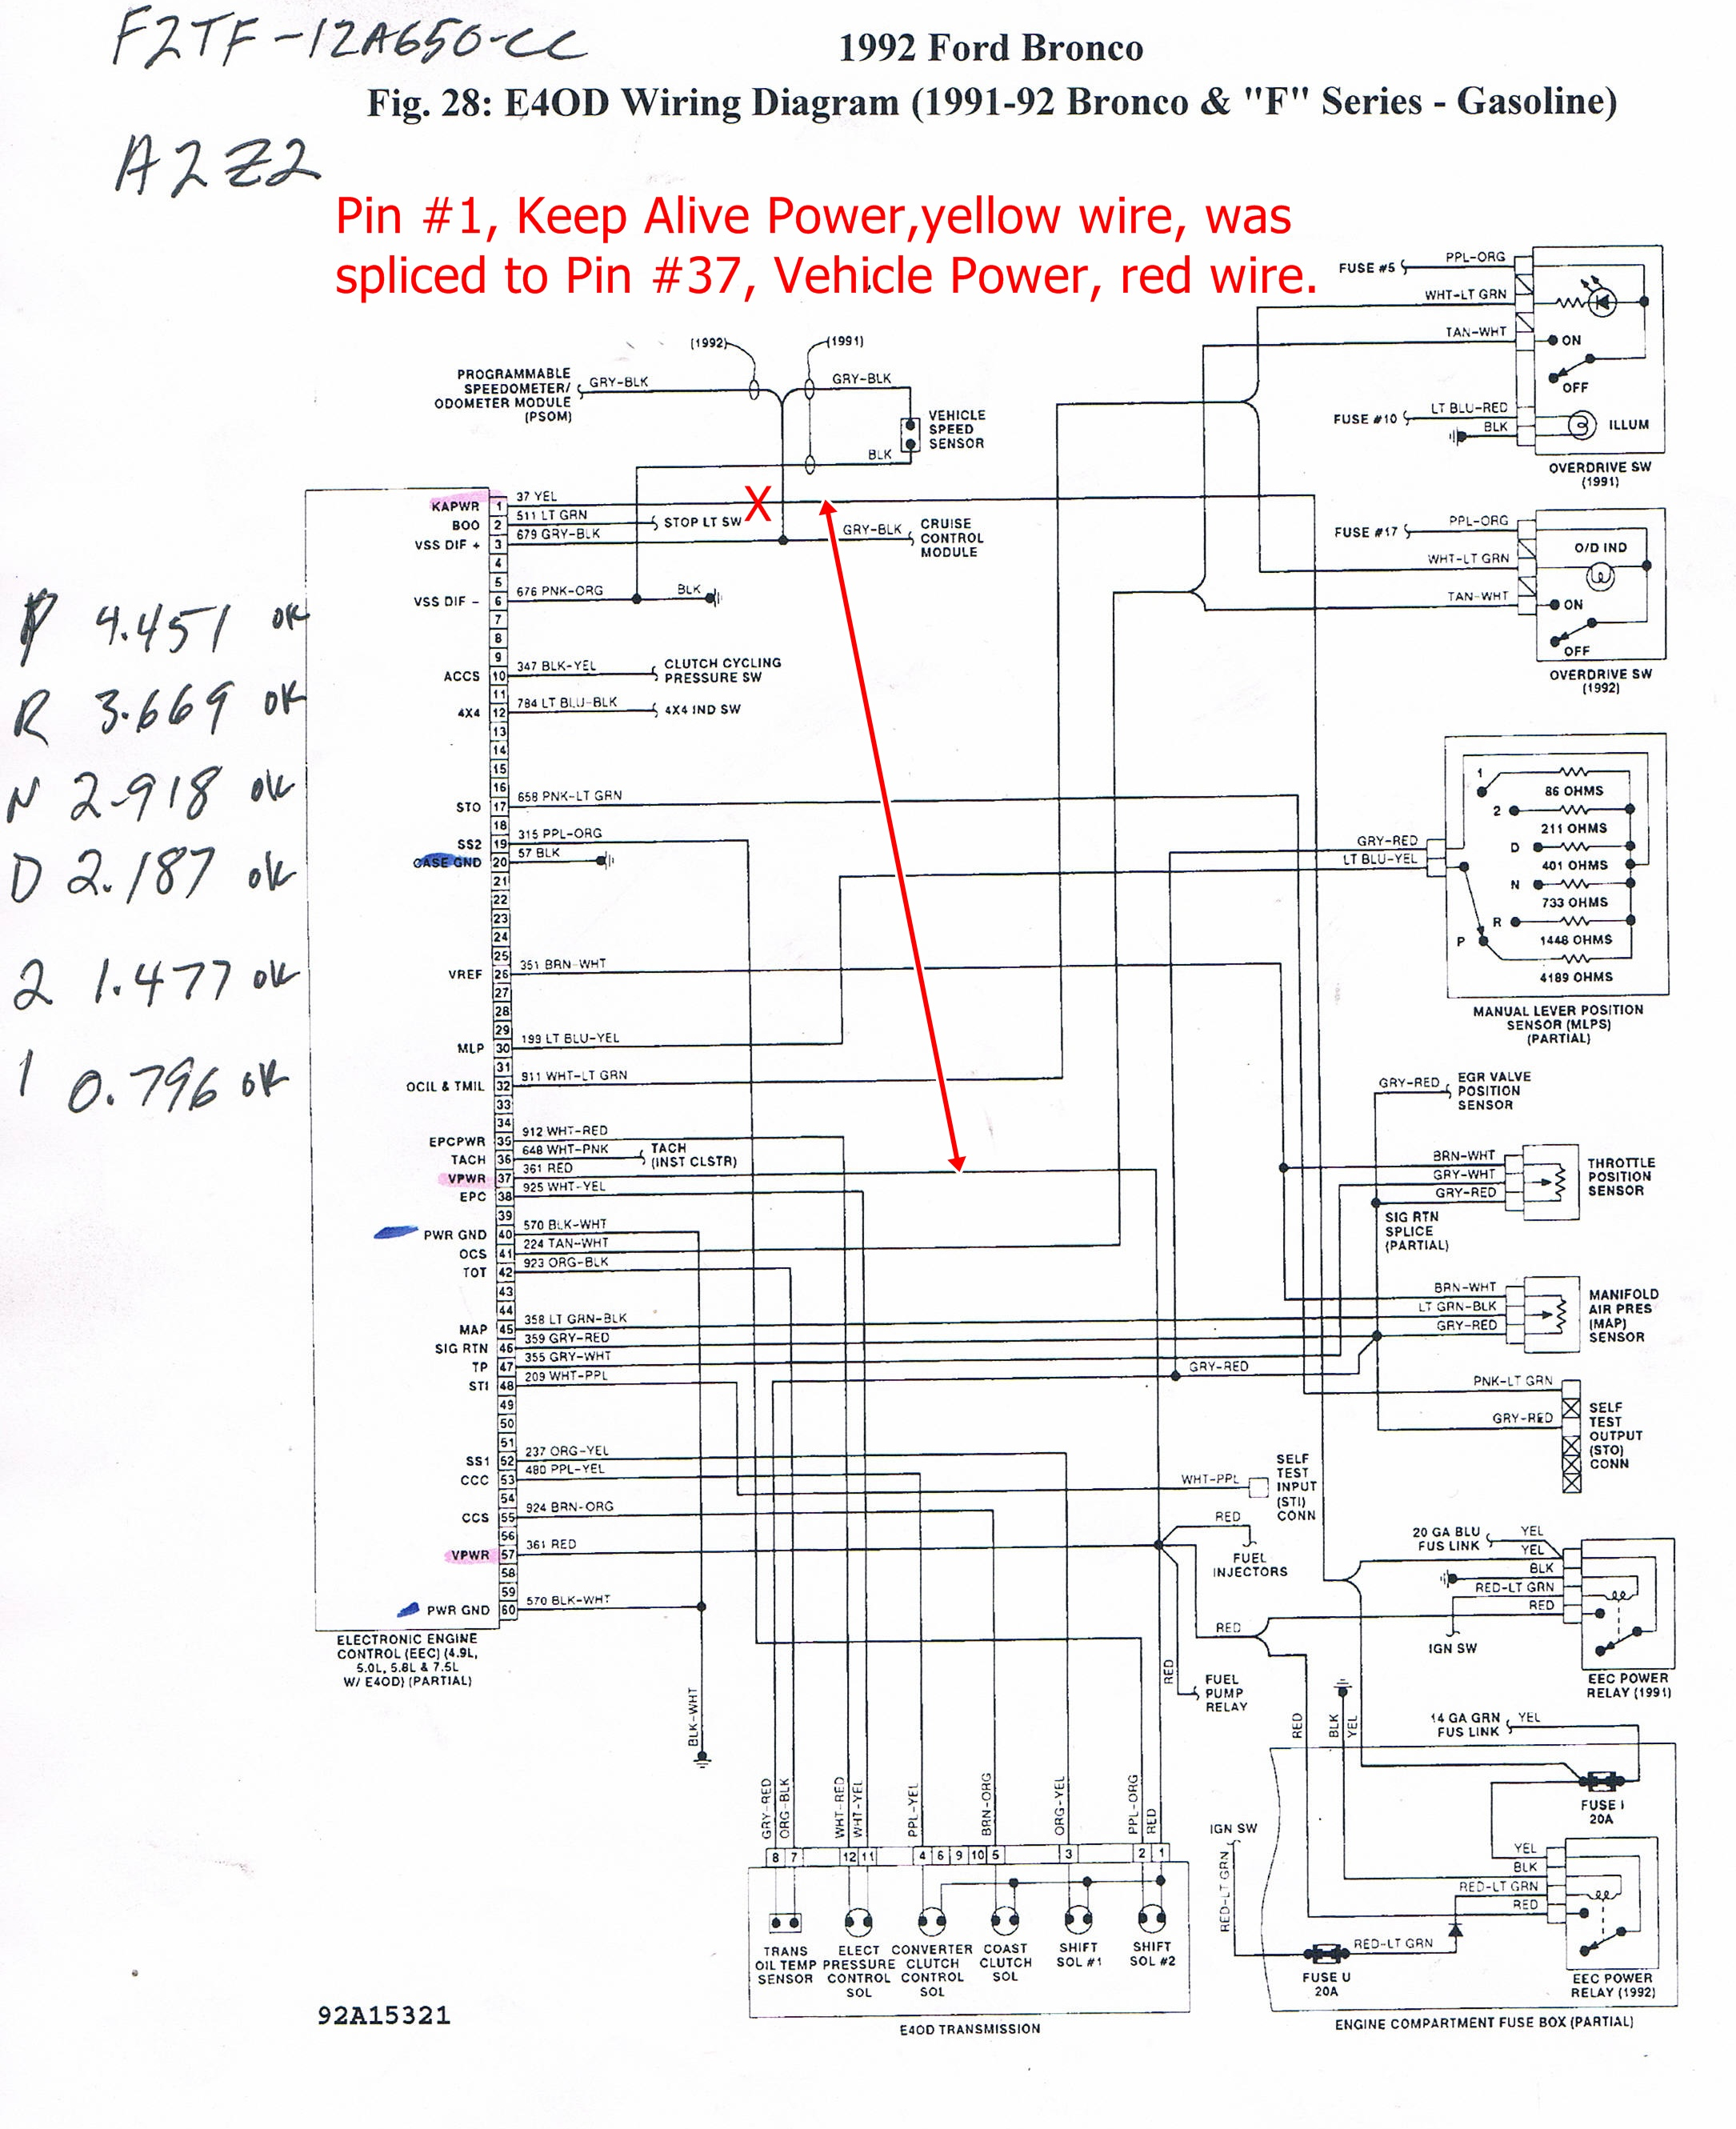 Electrical Wiring Diagram For Transmission Solenoid Not Lossing Fisher Plow Relay 4l80e Todays Rh 6 10 7 1813weddingbarn Com Valve